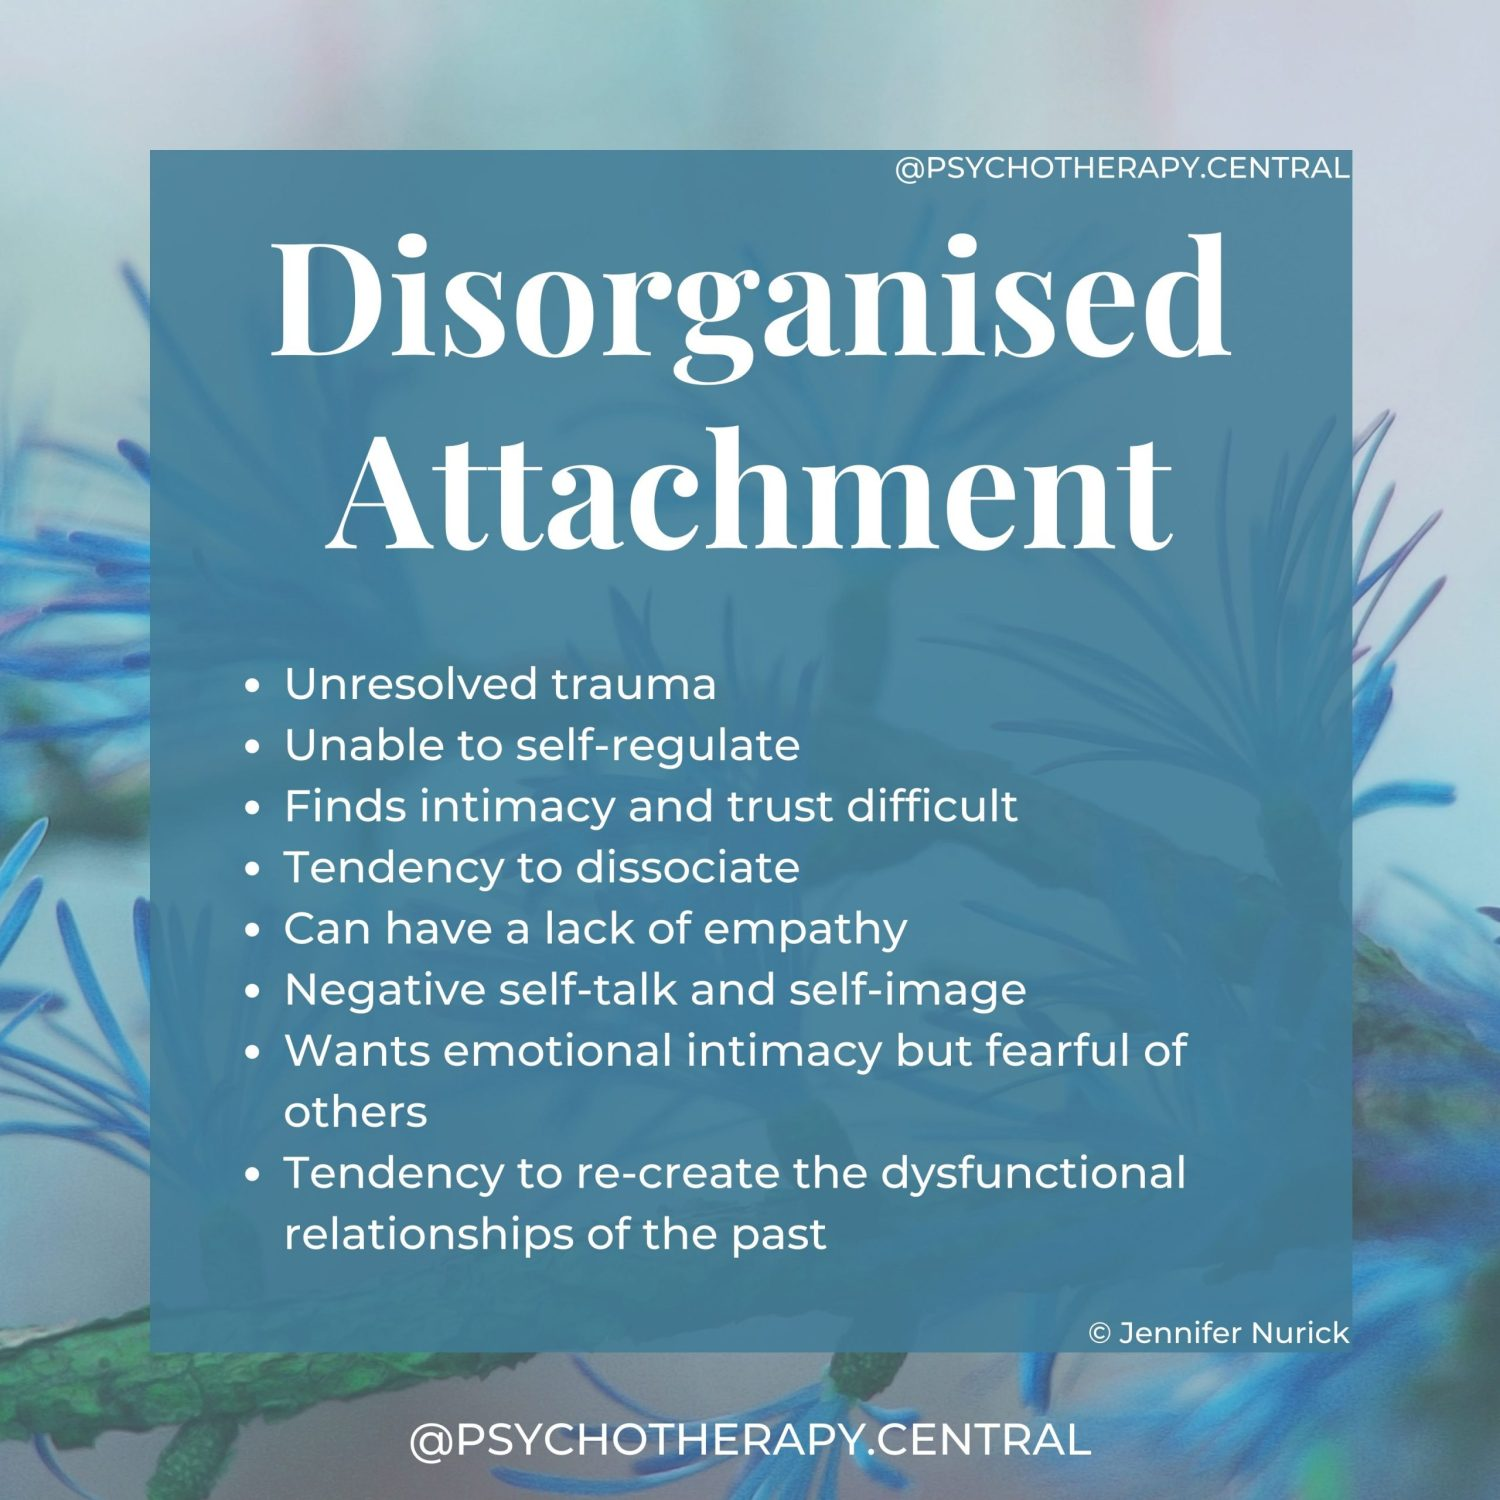 Disorganised Attachment Unresolved trauma Unable to self-regulate Finds intimacy and trust difficult Tendency to dissociate Can have a lack of empathy Negative self-talk and self-image Wants emotional intimacy but fearful of others Tendency to re-create the dysfunctional relationship of the past